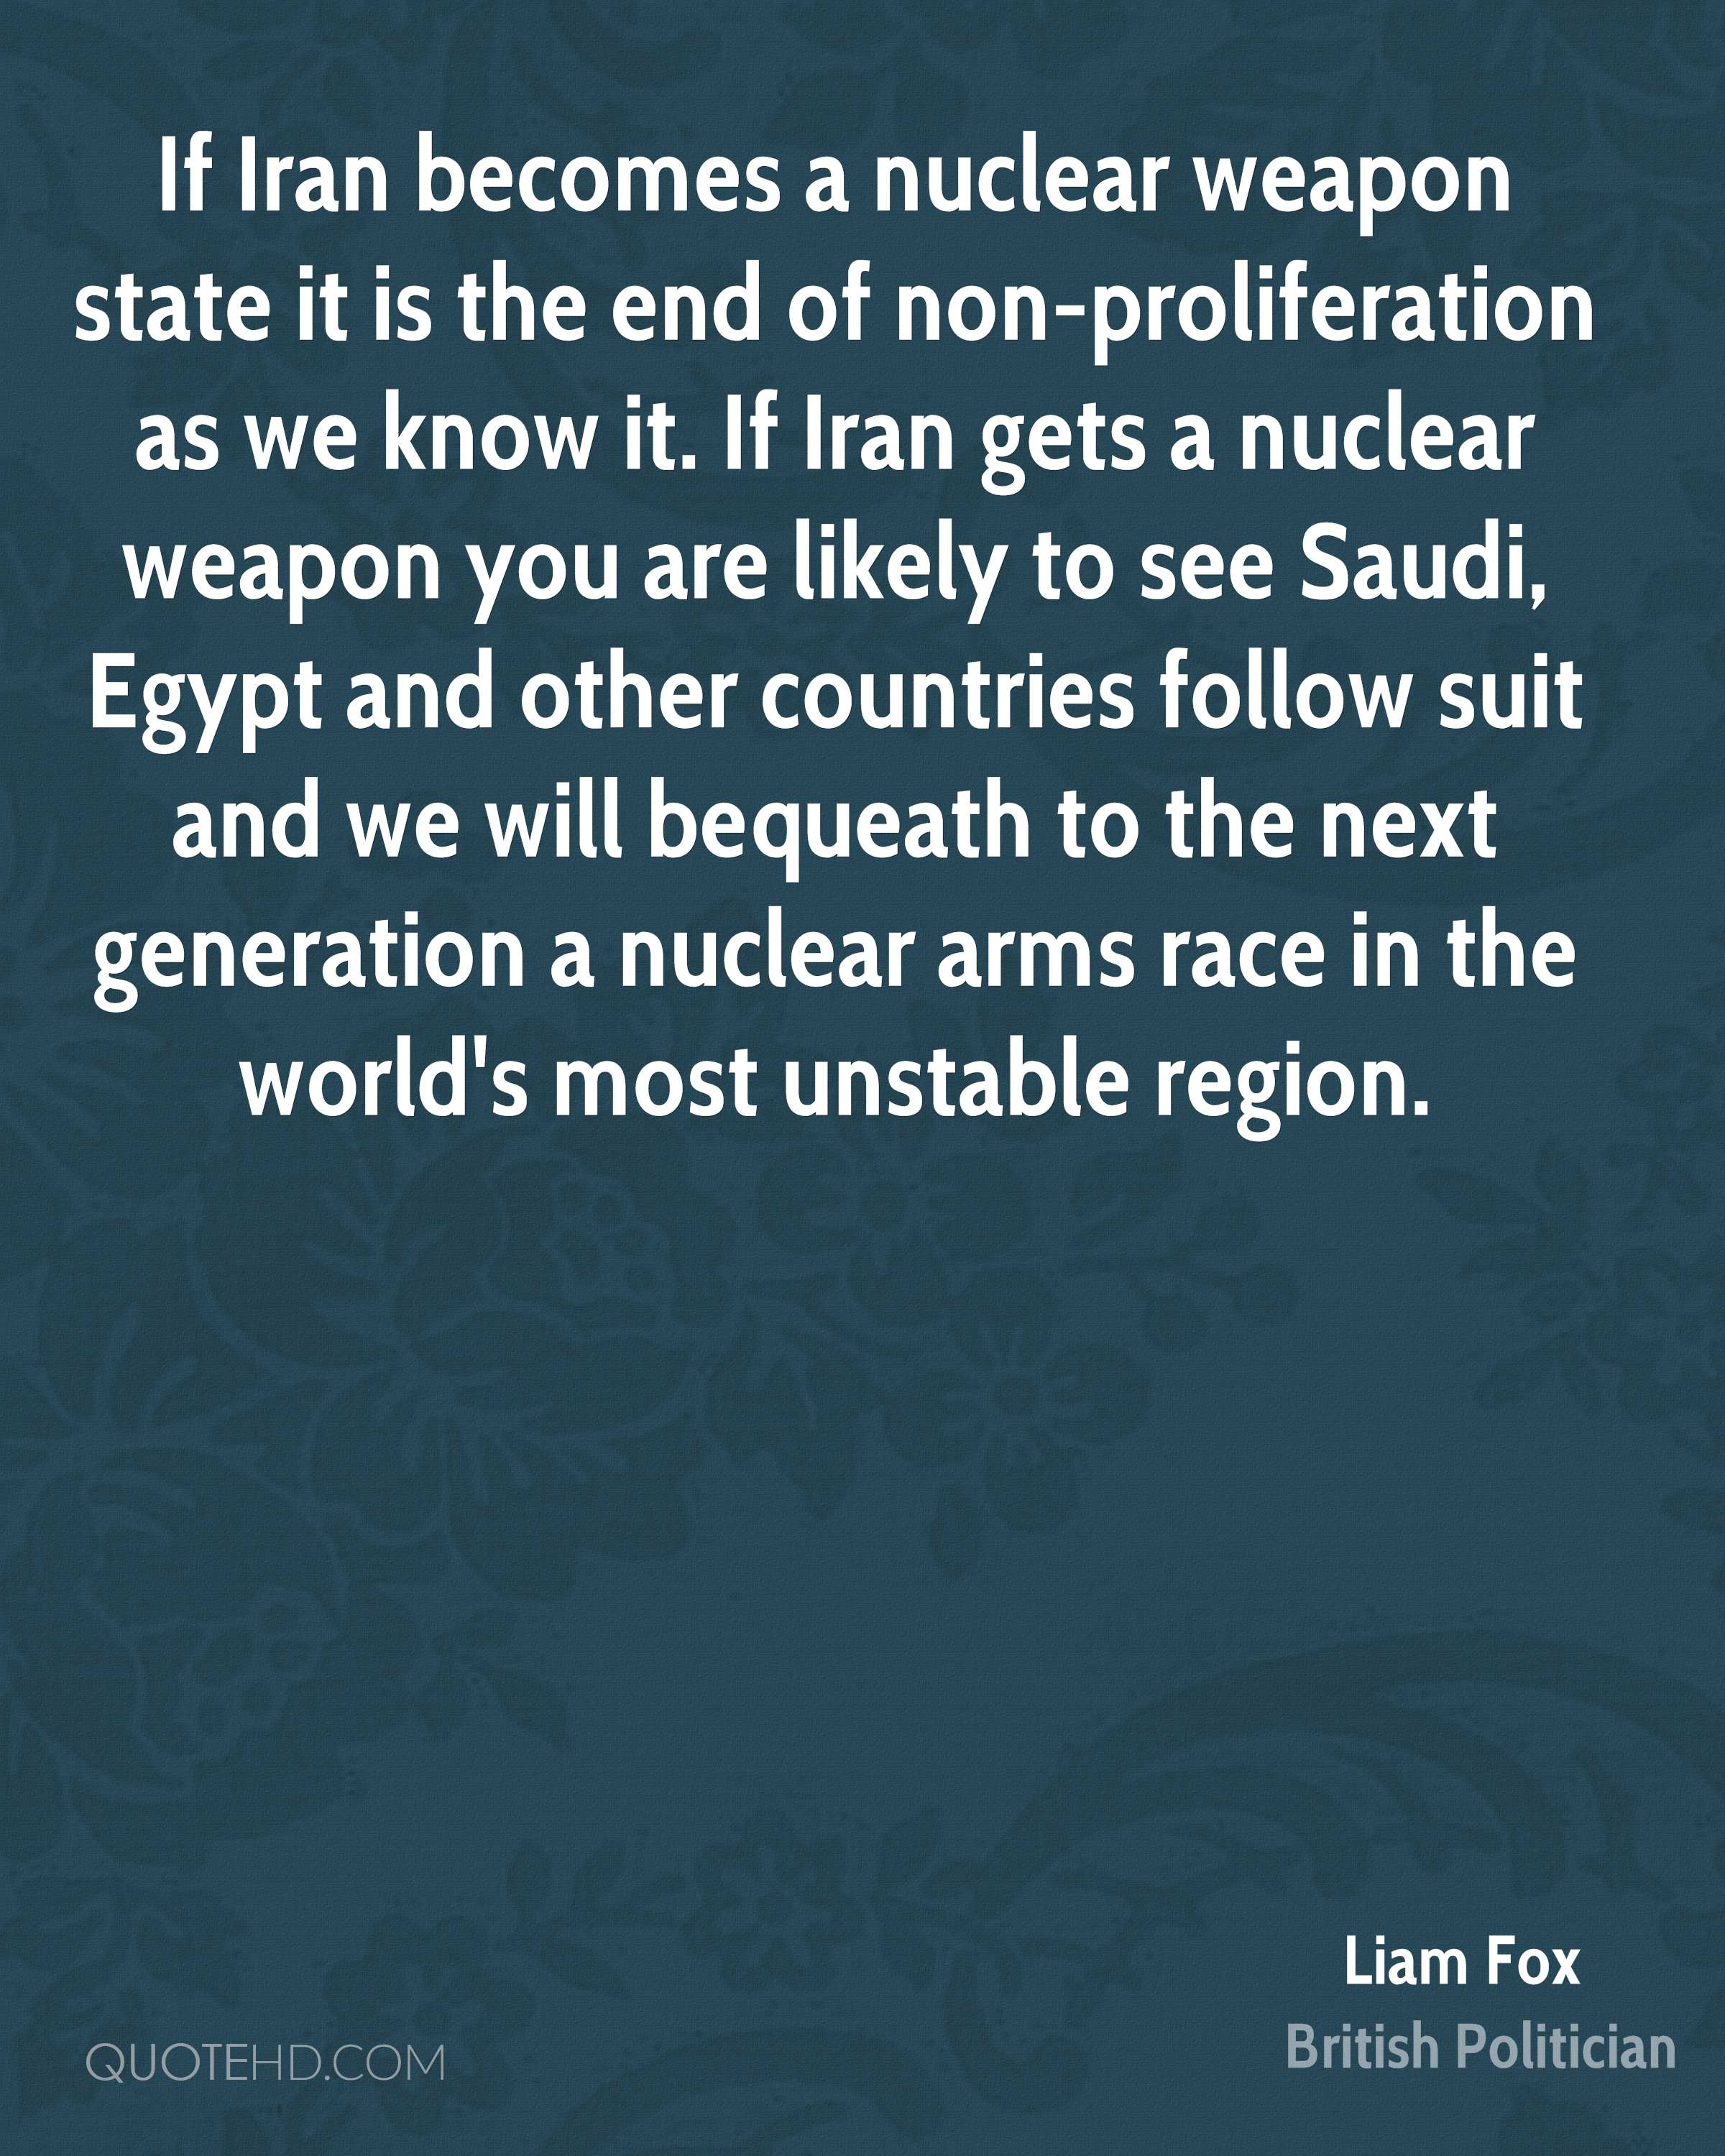 If Iran becomes a nuclear weapon state it is the end of non-proliferation as we know it. If Iran gets a nuclear weapon you are likely to see Saudi, Egypt and other countries follow suit and we will bequeath to the next generation a nuclear arms race in the world's most unstable region.